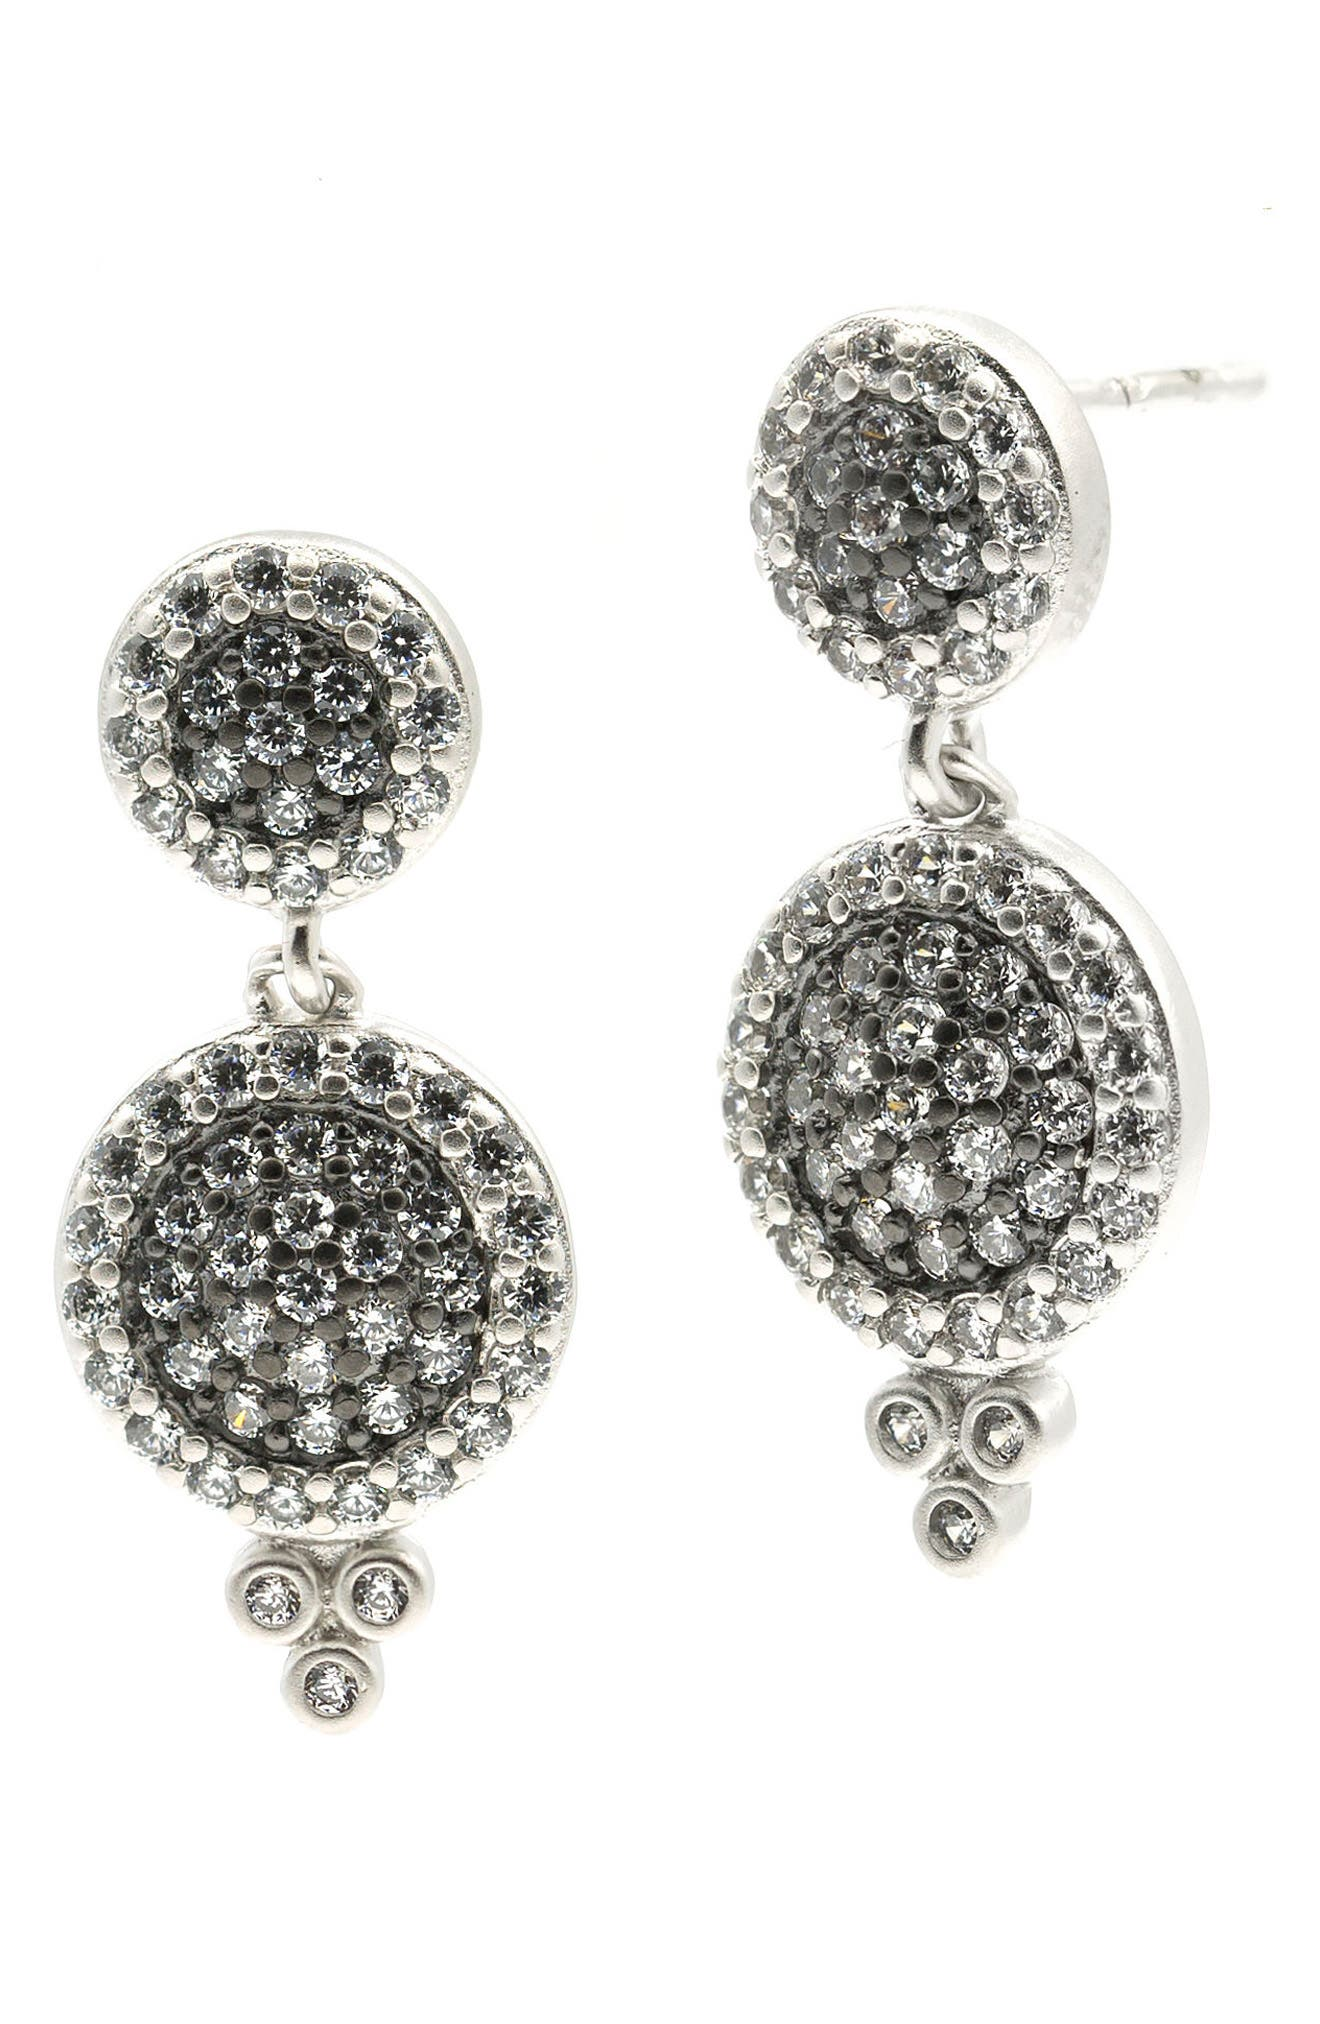 'Metropolitan' Drop Earrings,                             Main thumbnail 1, color,                             041